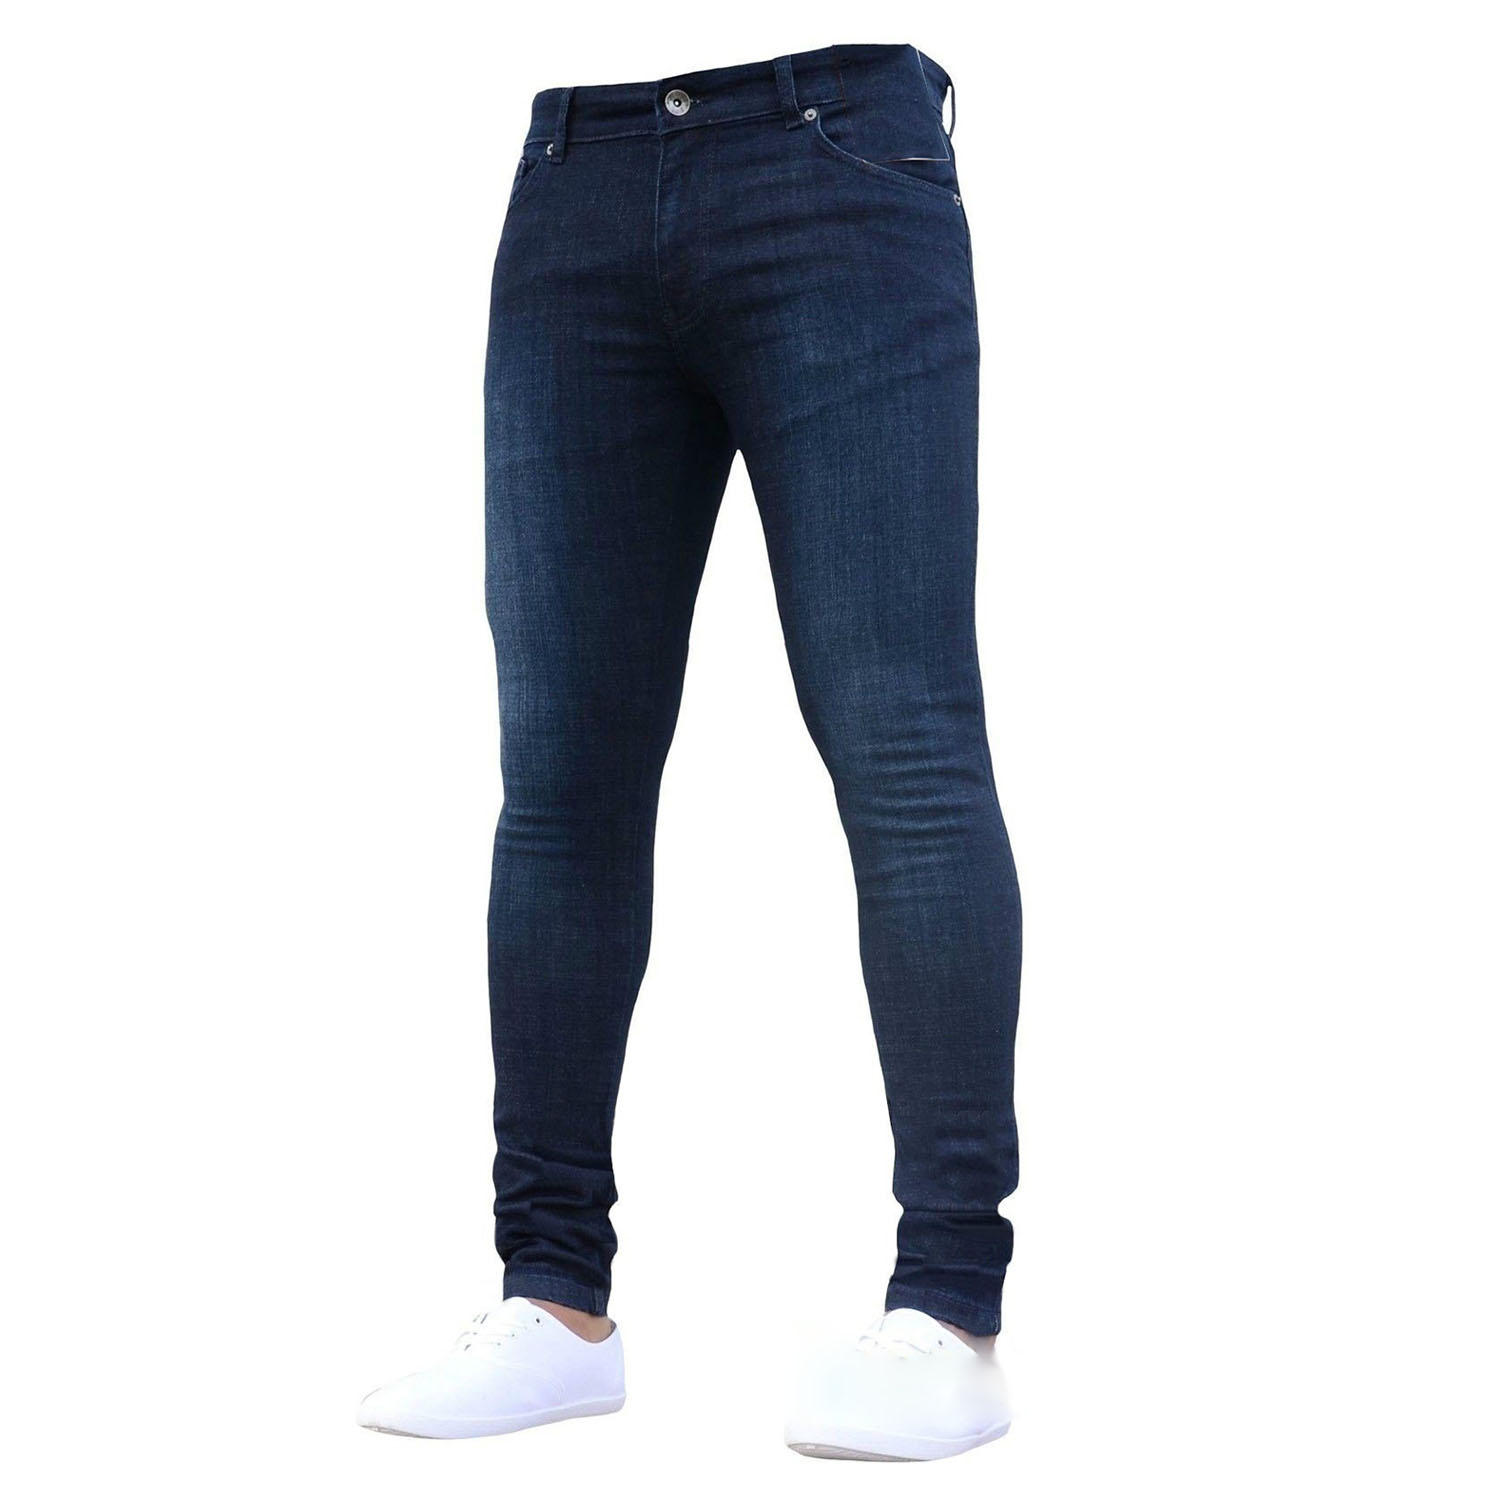 MYTL-Men Autumn Winter Fashion Casual Stretch Skinny   Jeans   Slim Denim Pencil Pants Leggings Trousers Plus Size